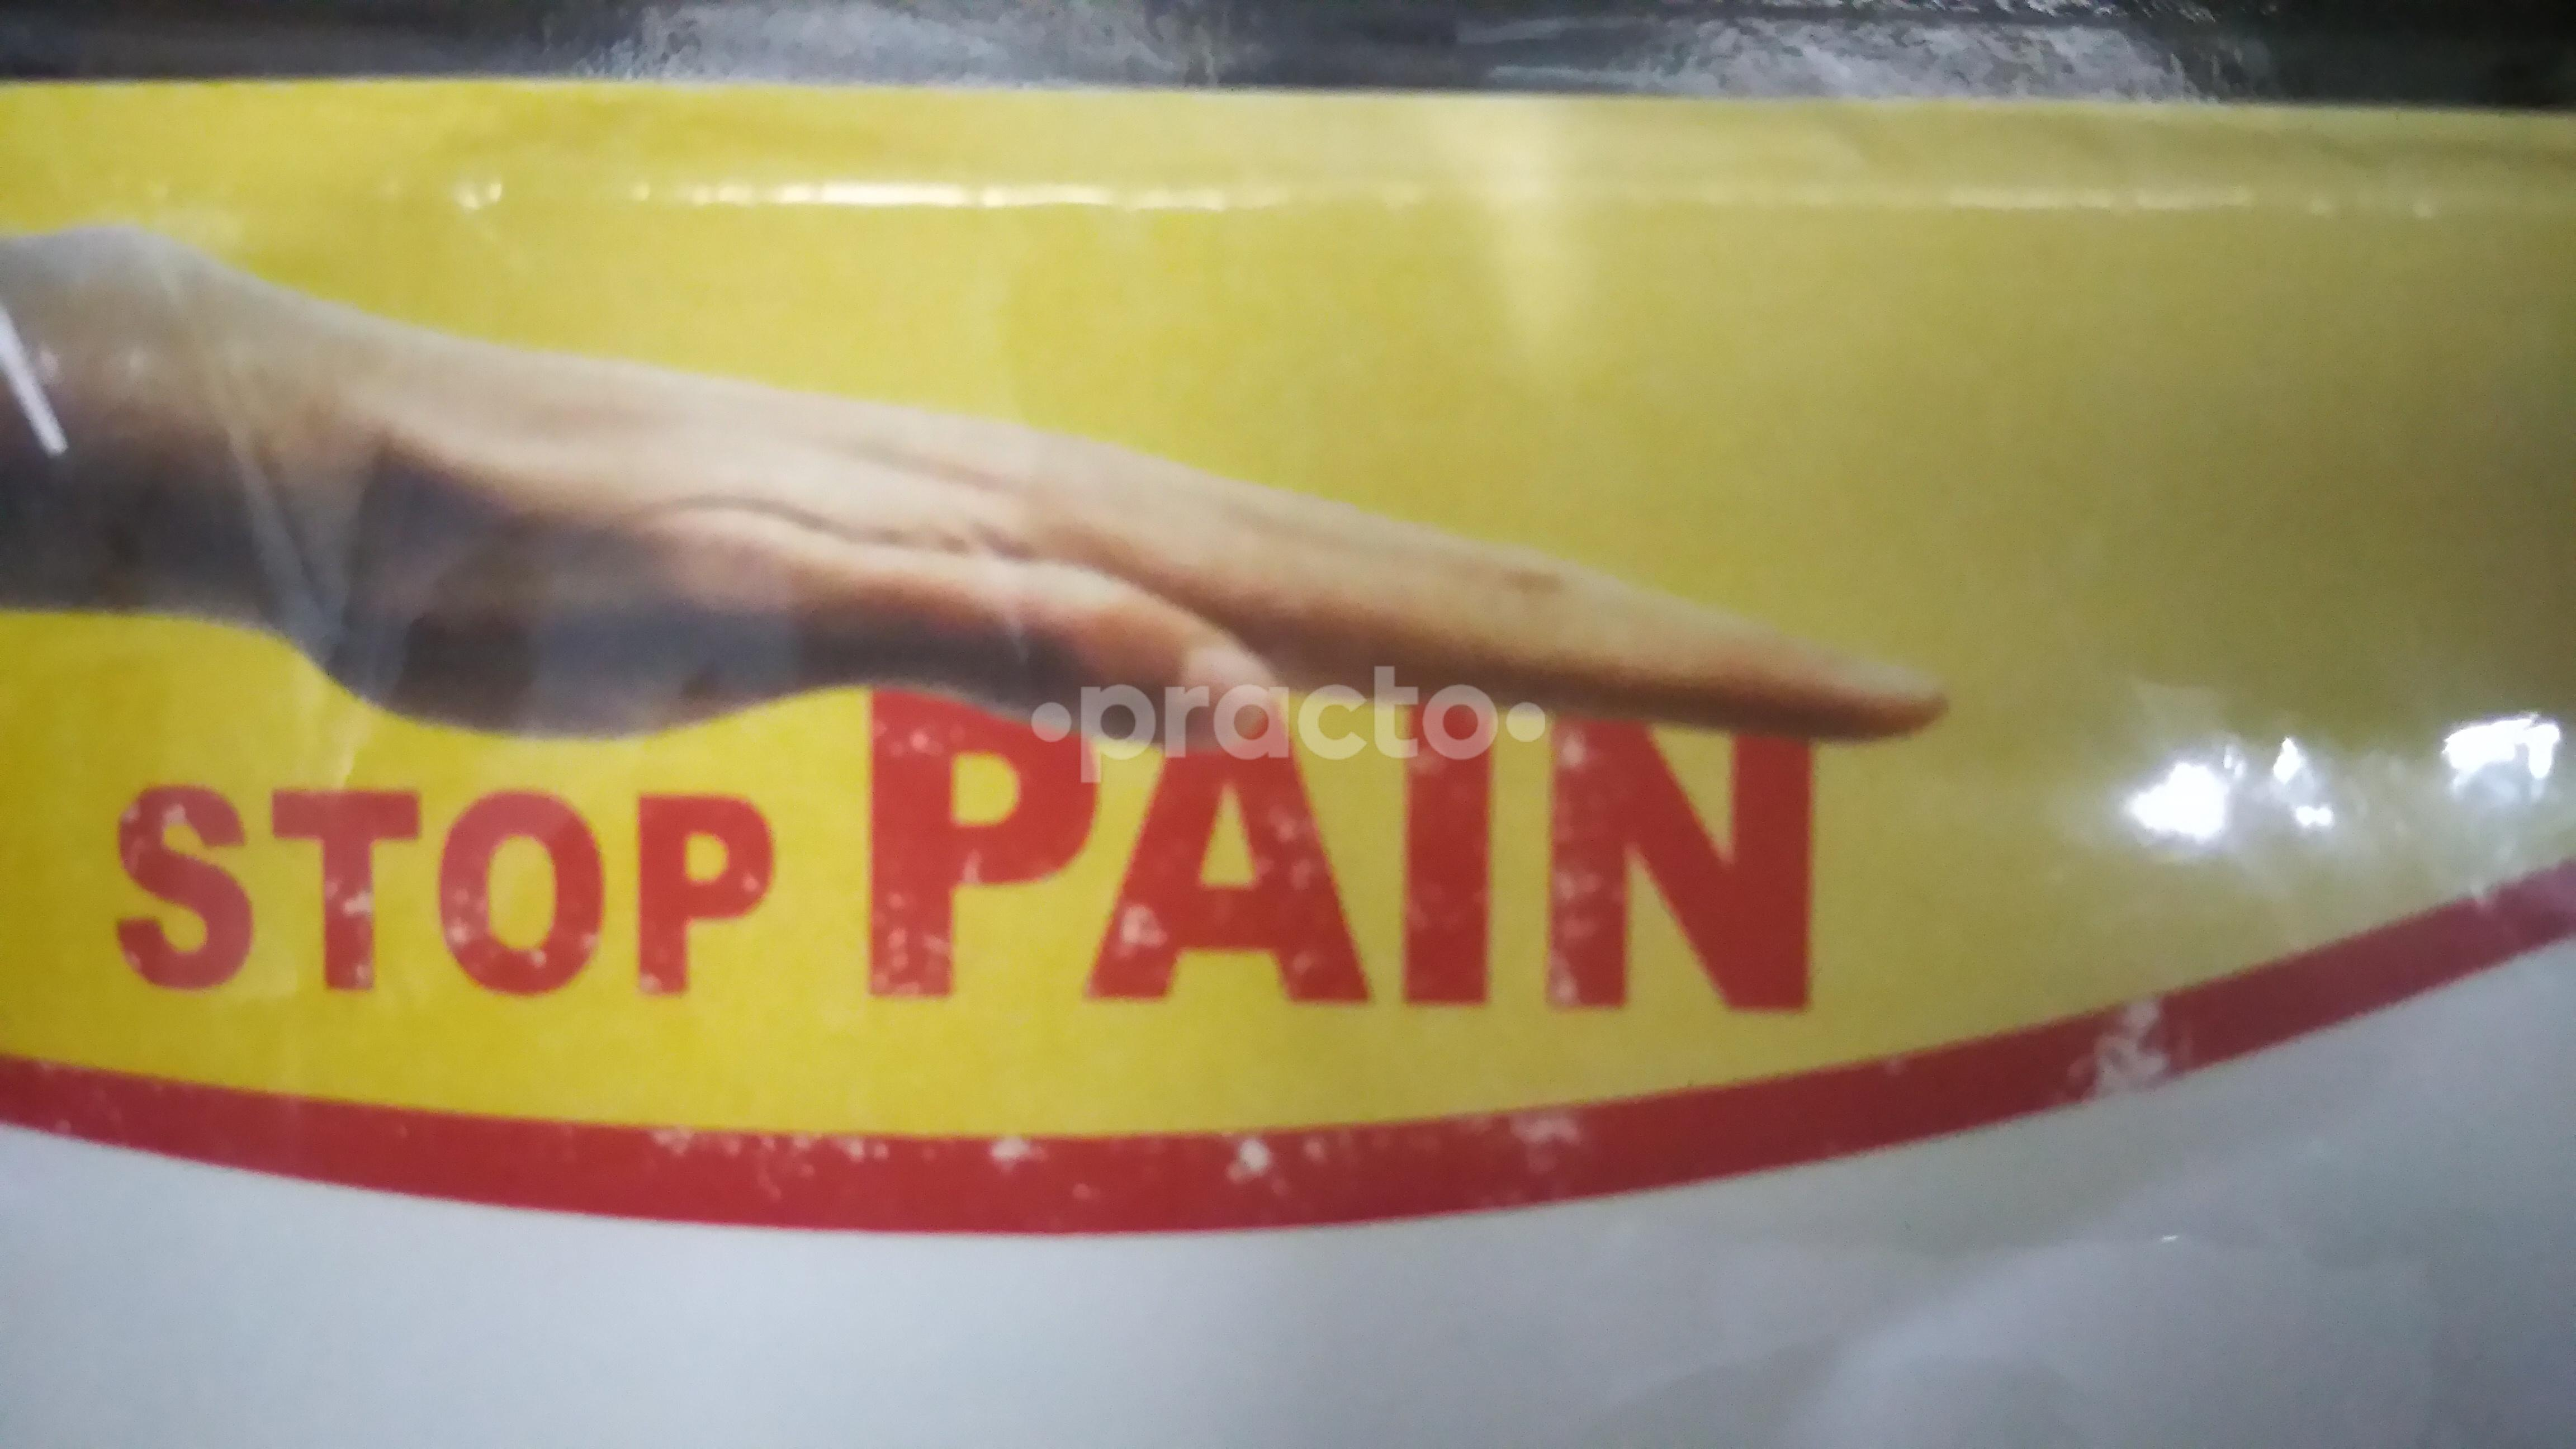 Zeal Pain Management Centre